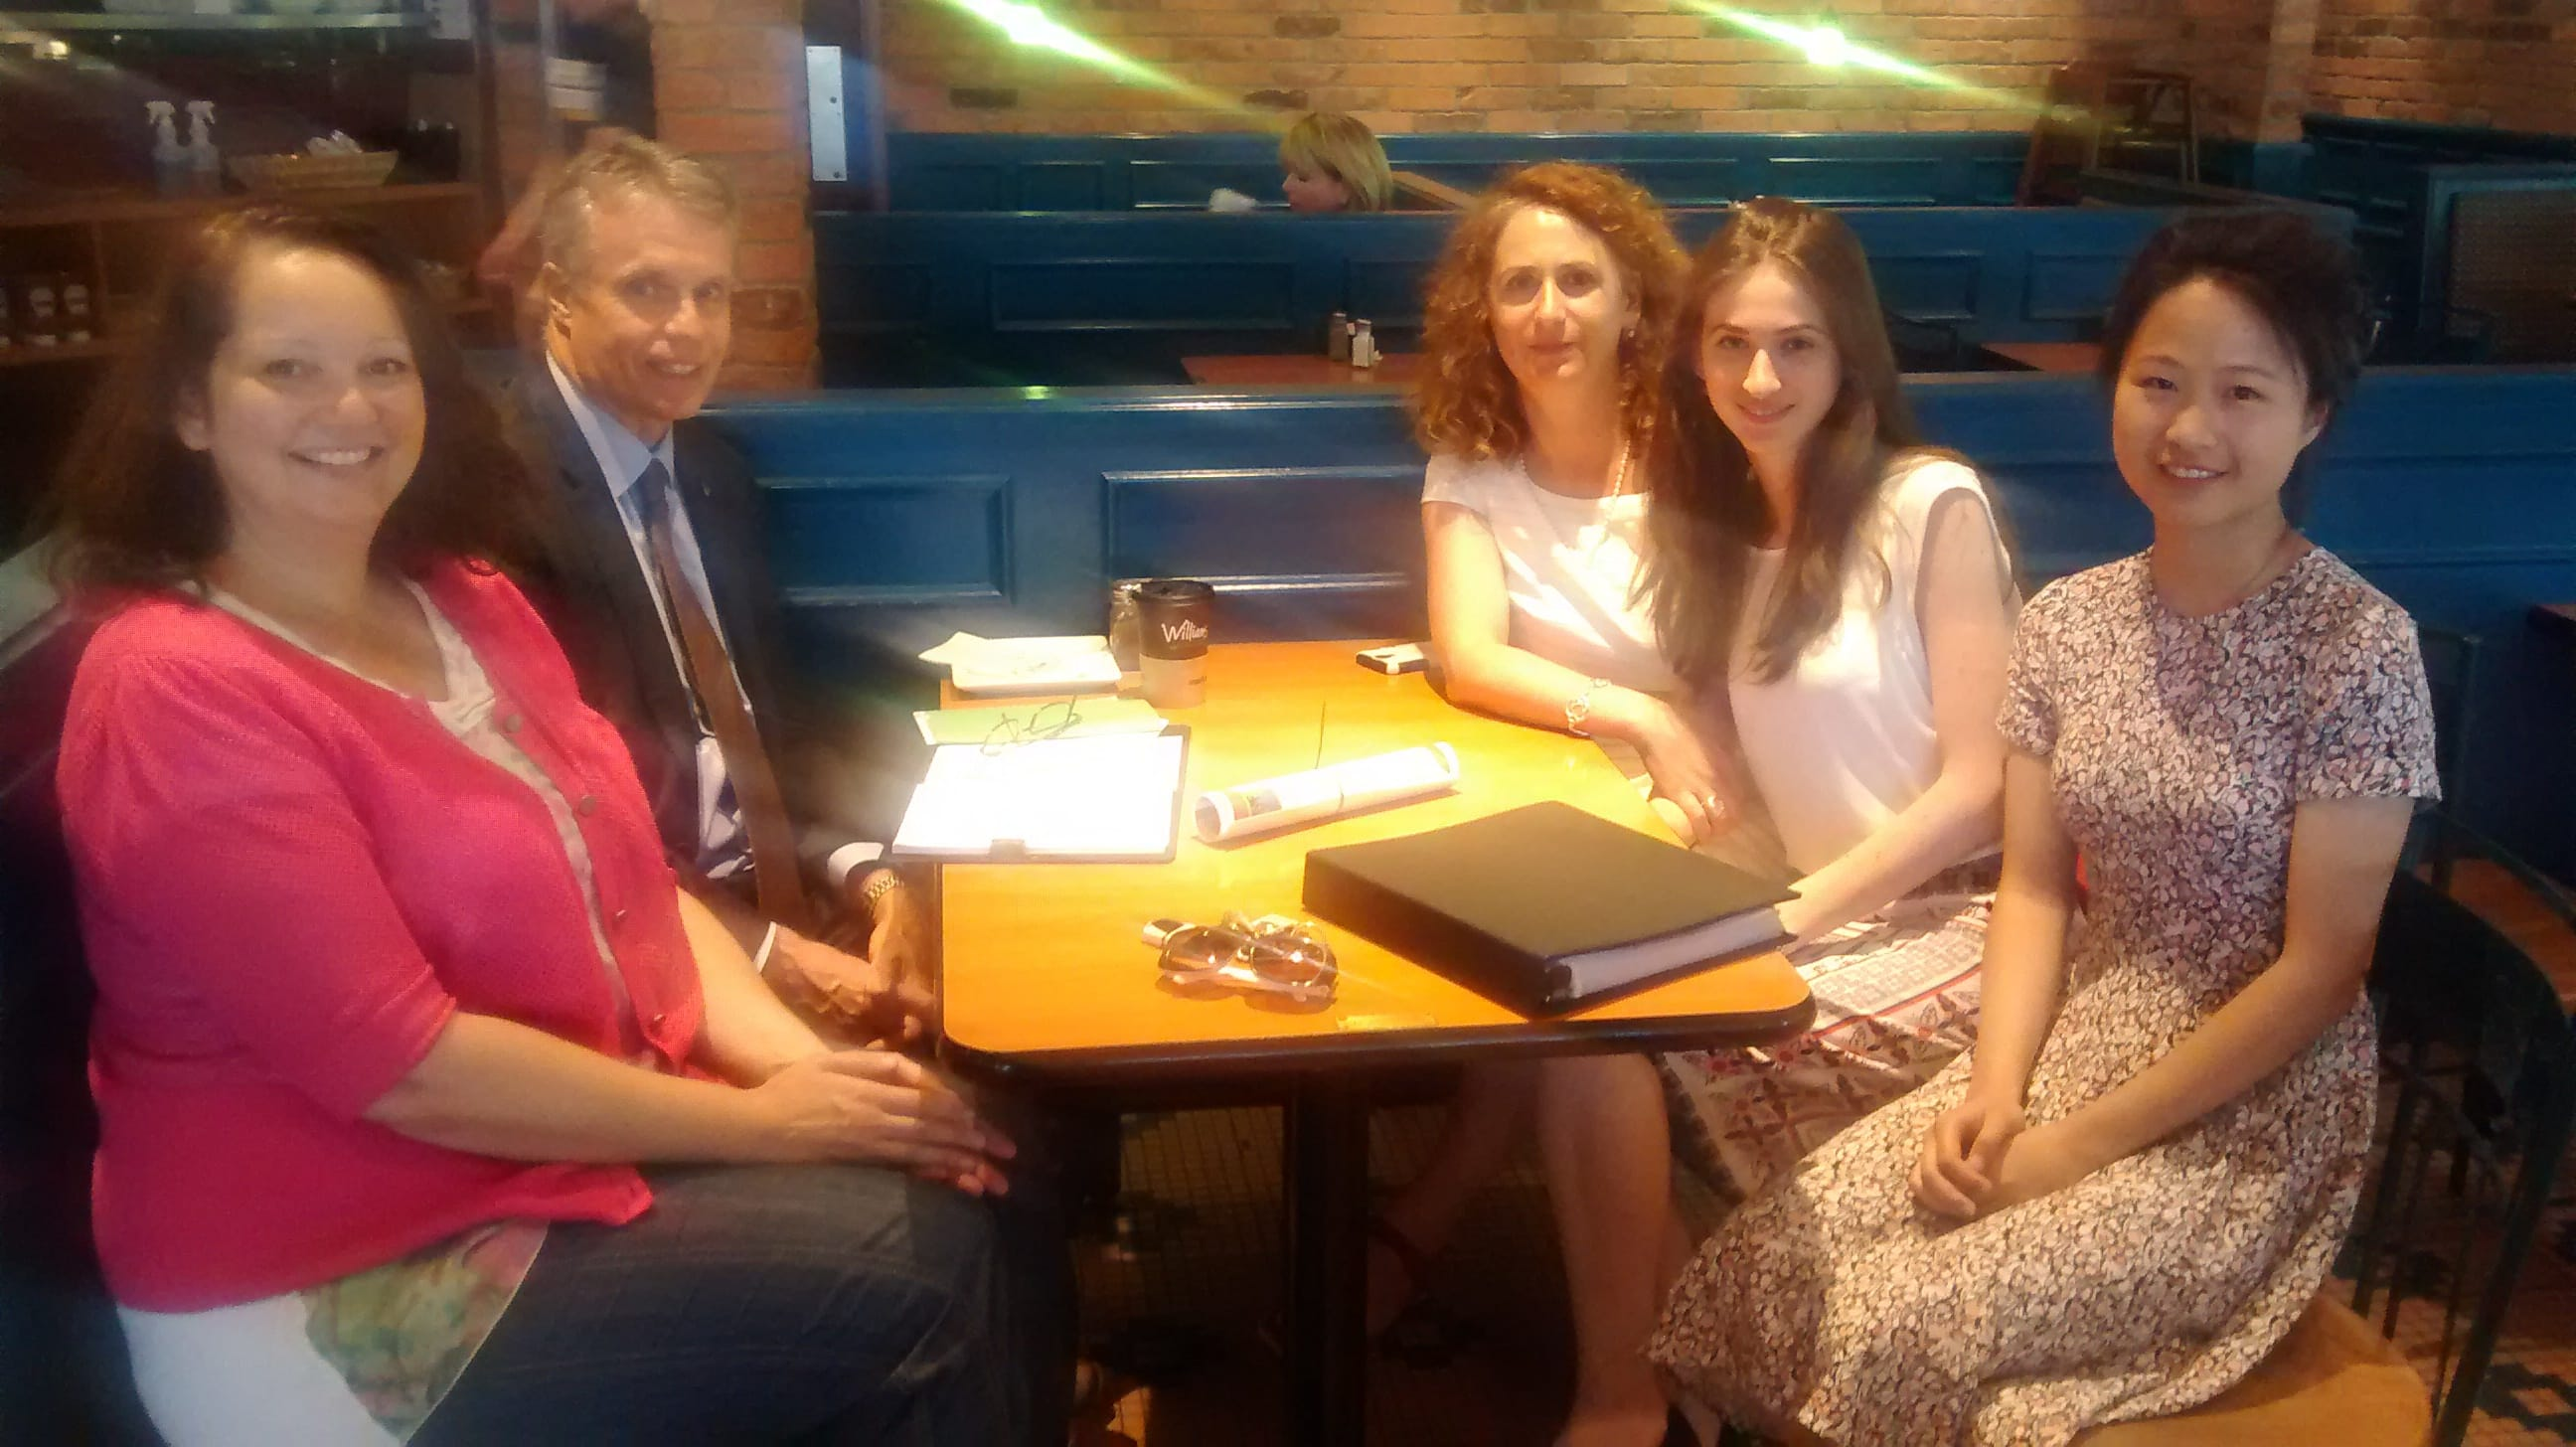 (photo) Discussion on Meditation with Mayor Goldring @ Williams Fresh Cafe (June 25, 2015) .. and it's a YES!